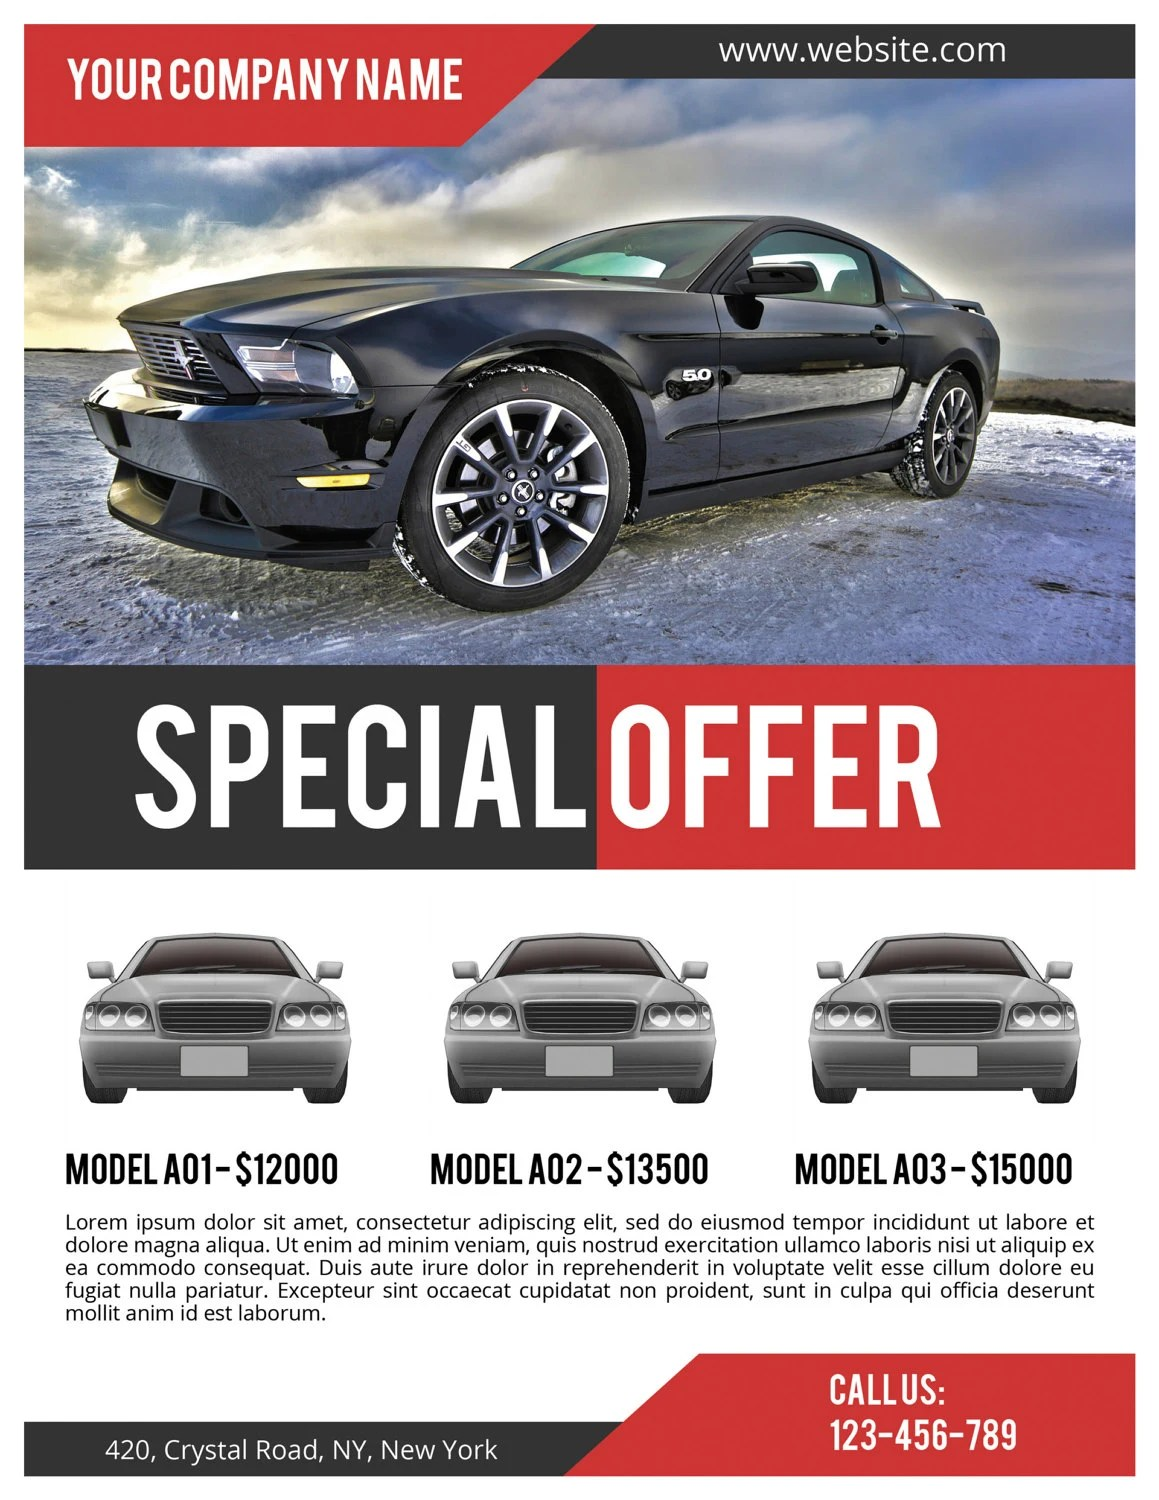 Car Sale Flyer PSD Template Commercial Flyer Template - car for sale flyer template